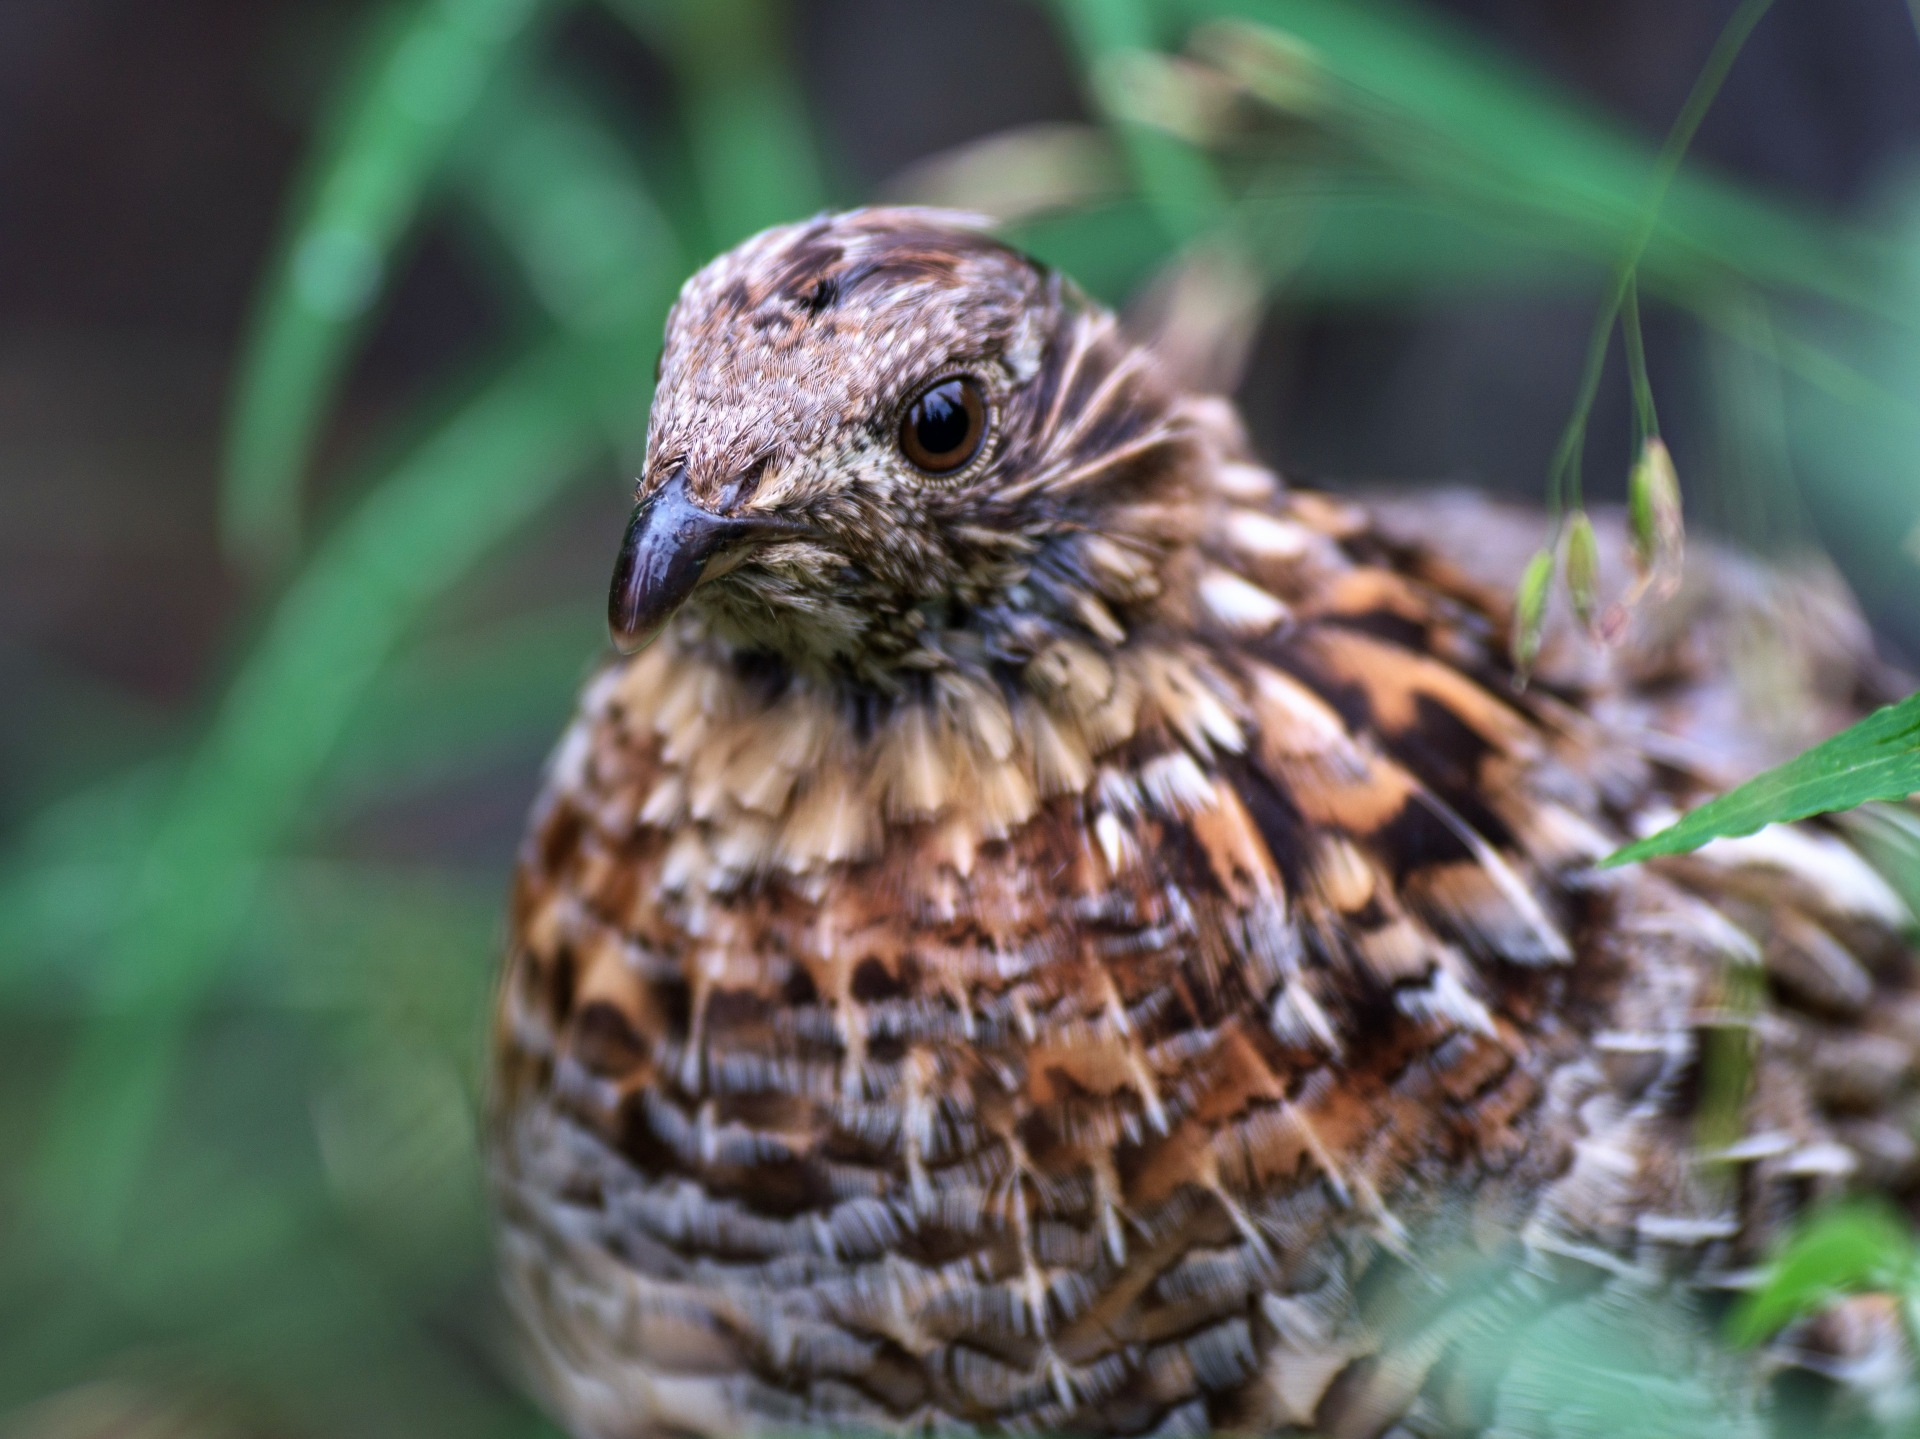 Hazel grouse by E Pedersen